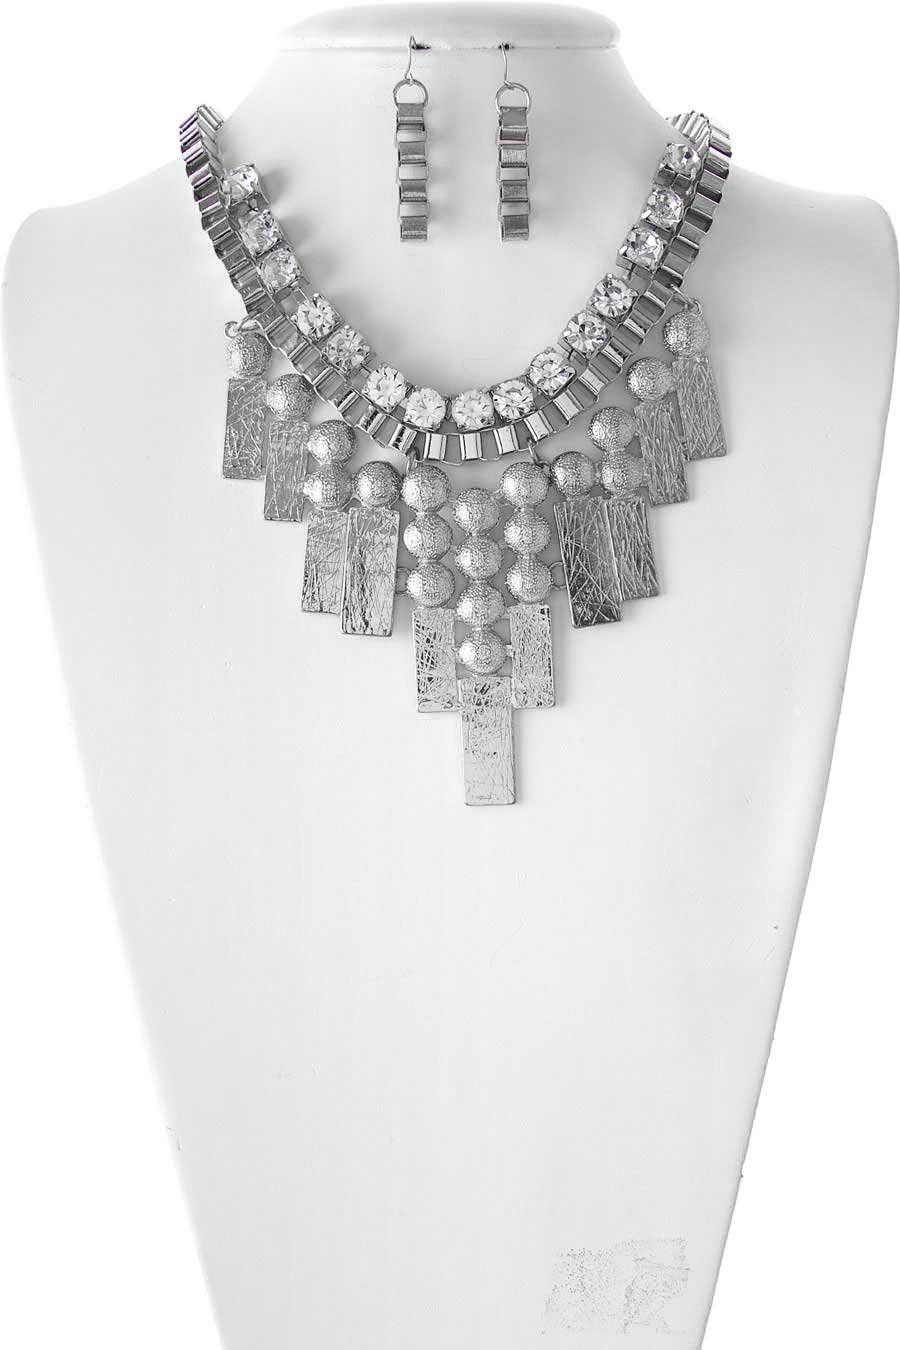 CHAIN BIB NECKLACE - orangeshine.com